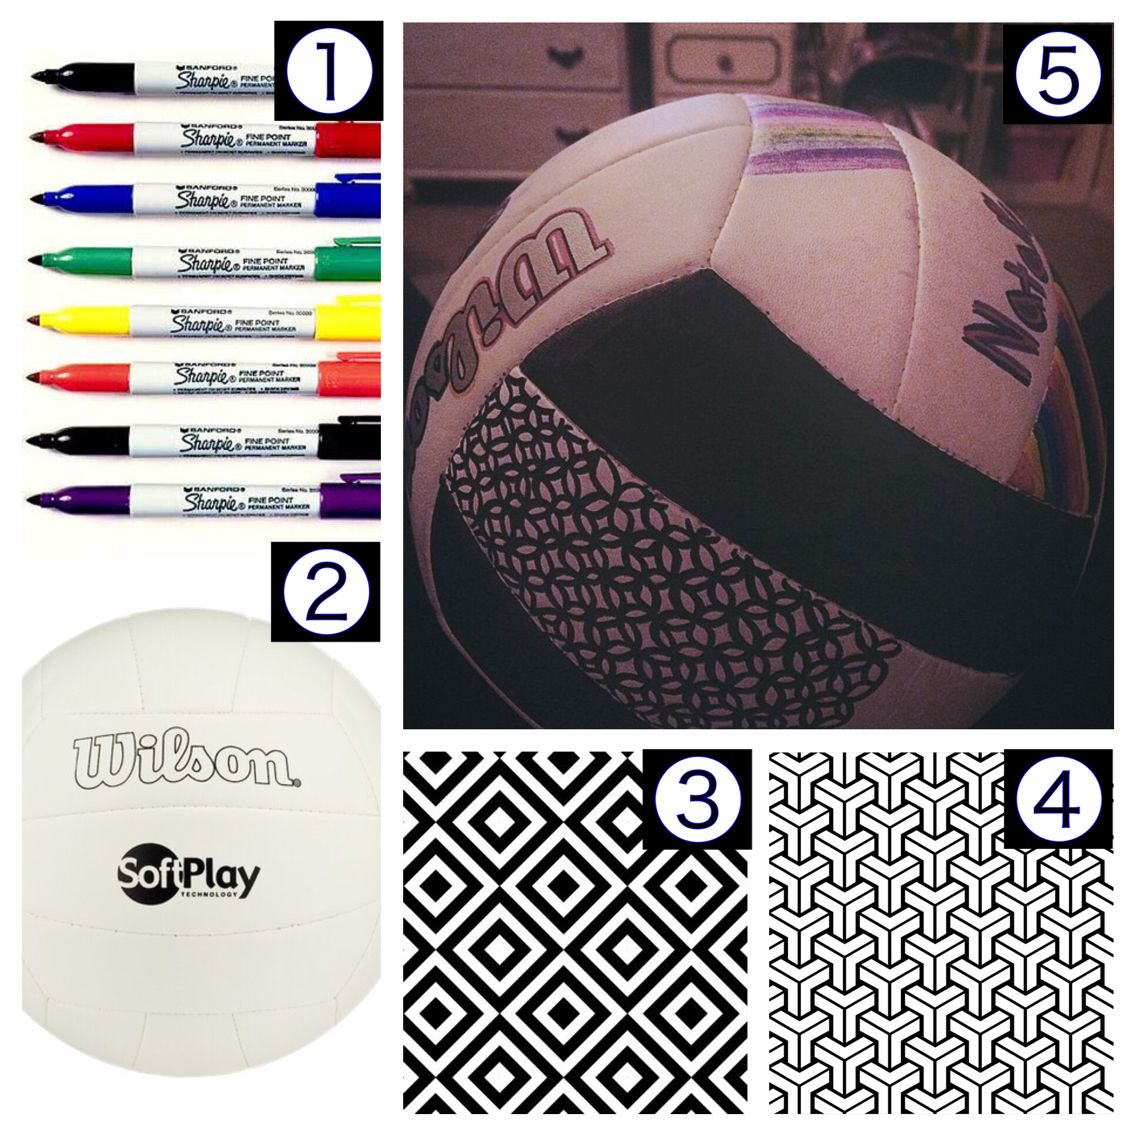 10 Sharpies From Walmart A White Volleyball And Some Patterns I Did This Free Hand You Could Create A St Sharpie Designs Volleyball Crafts Team Activities